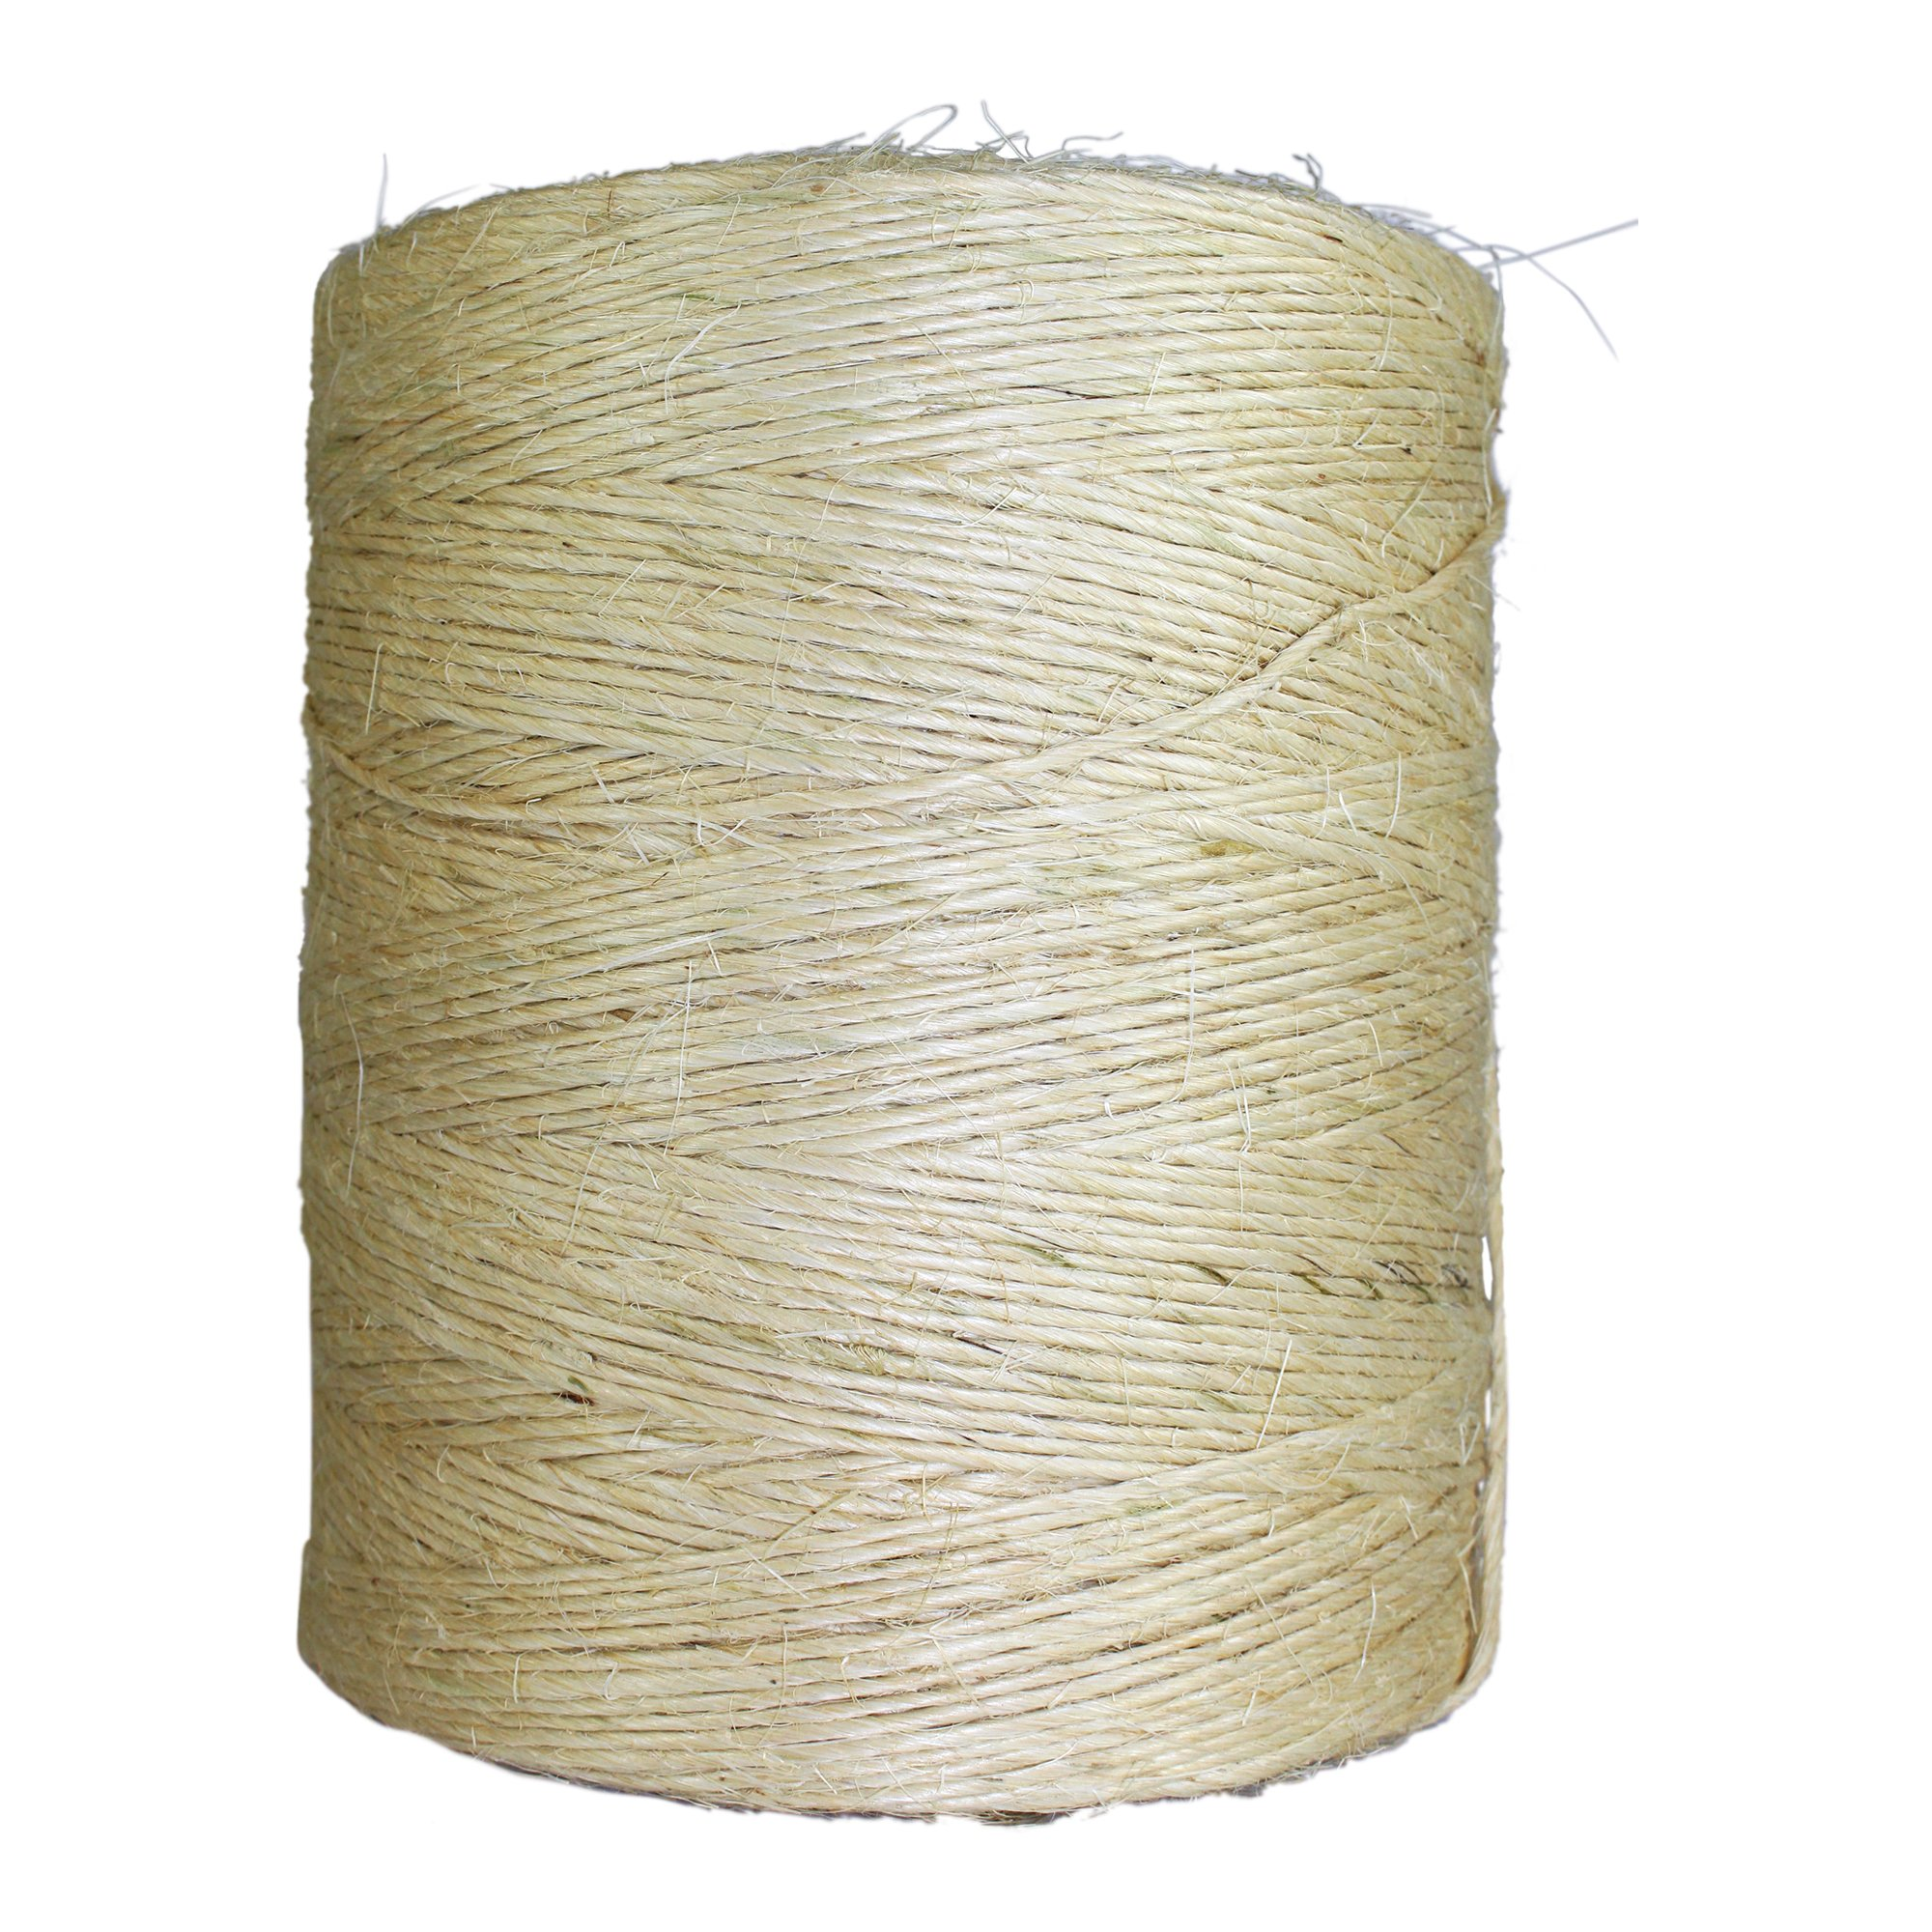 Unoiled Sisal Twine (8000 ft) - SGT KNOTS - 100% Natural Fiber Twine - Food Safe Eco Friendly - Crafting, Growing Hops for Beer Brewing, Cucumber Twine, Agriculture, Farming by SGT KNOTS